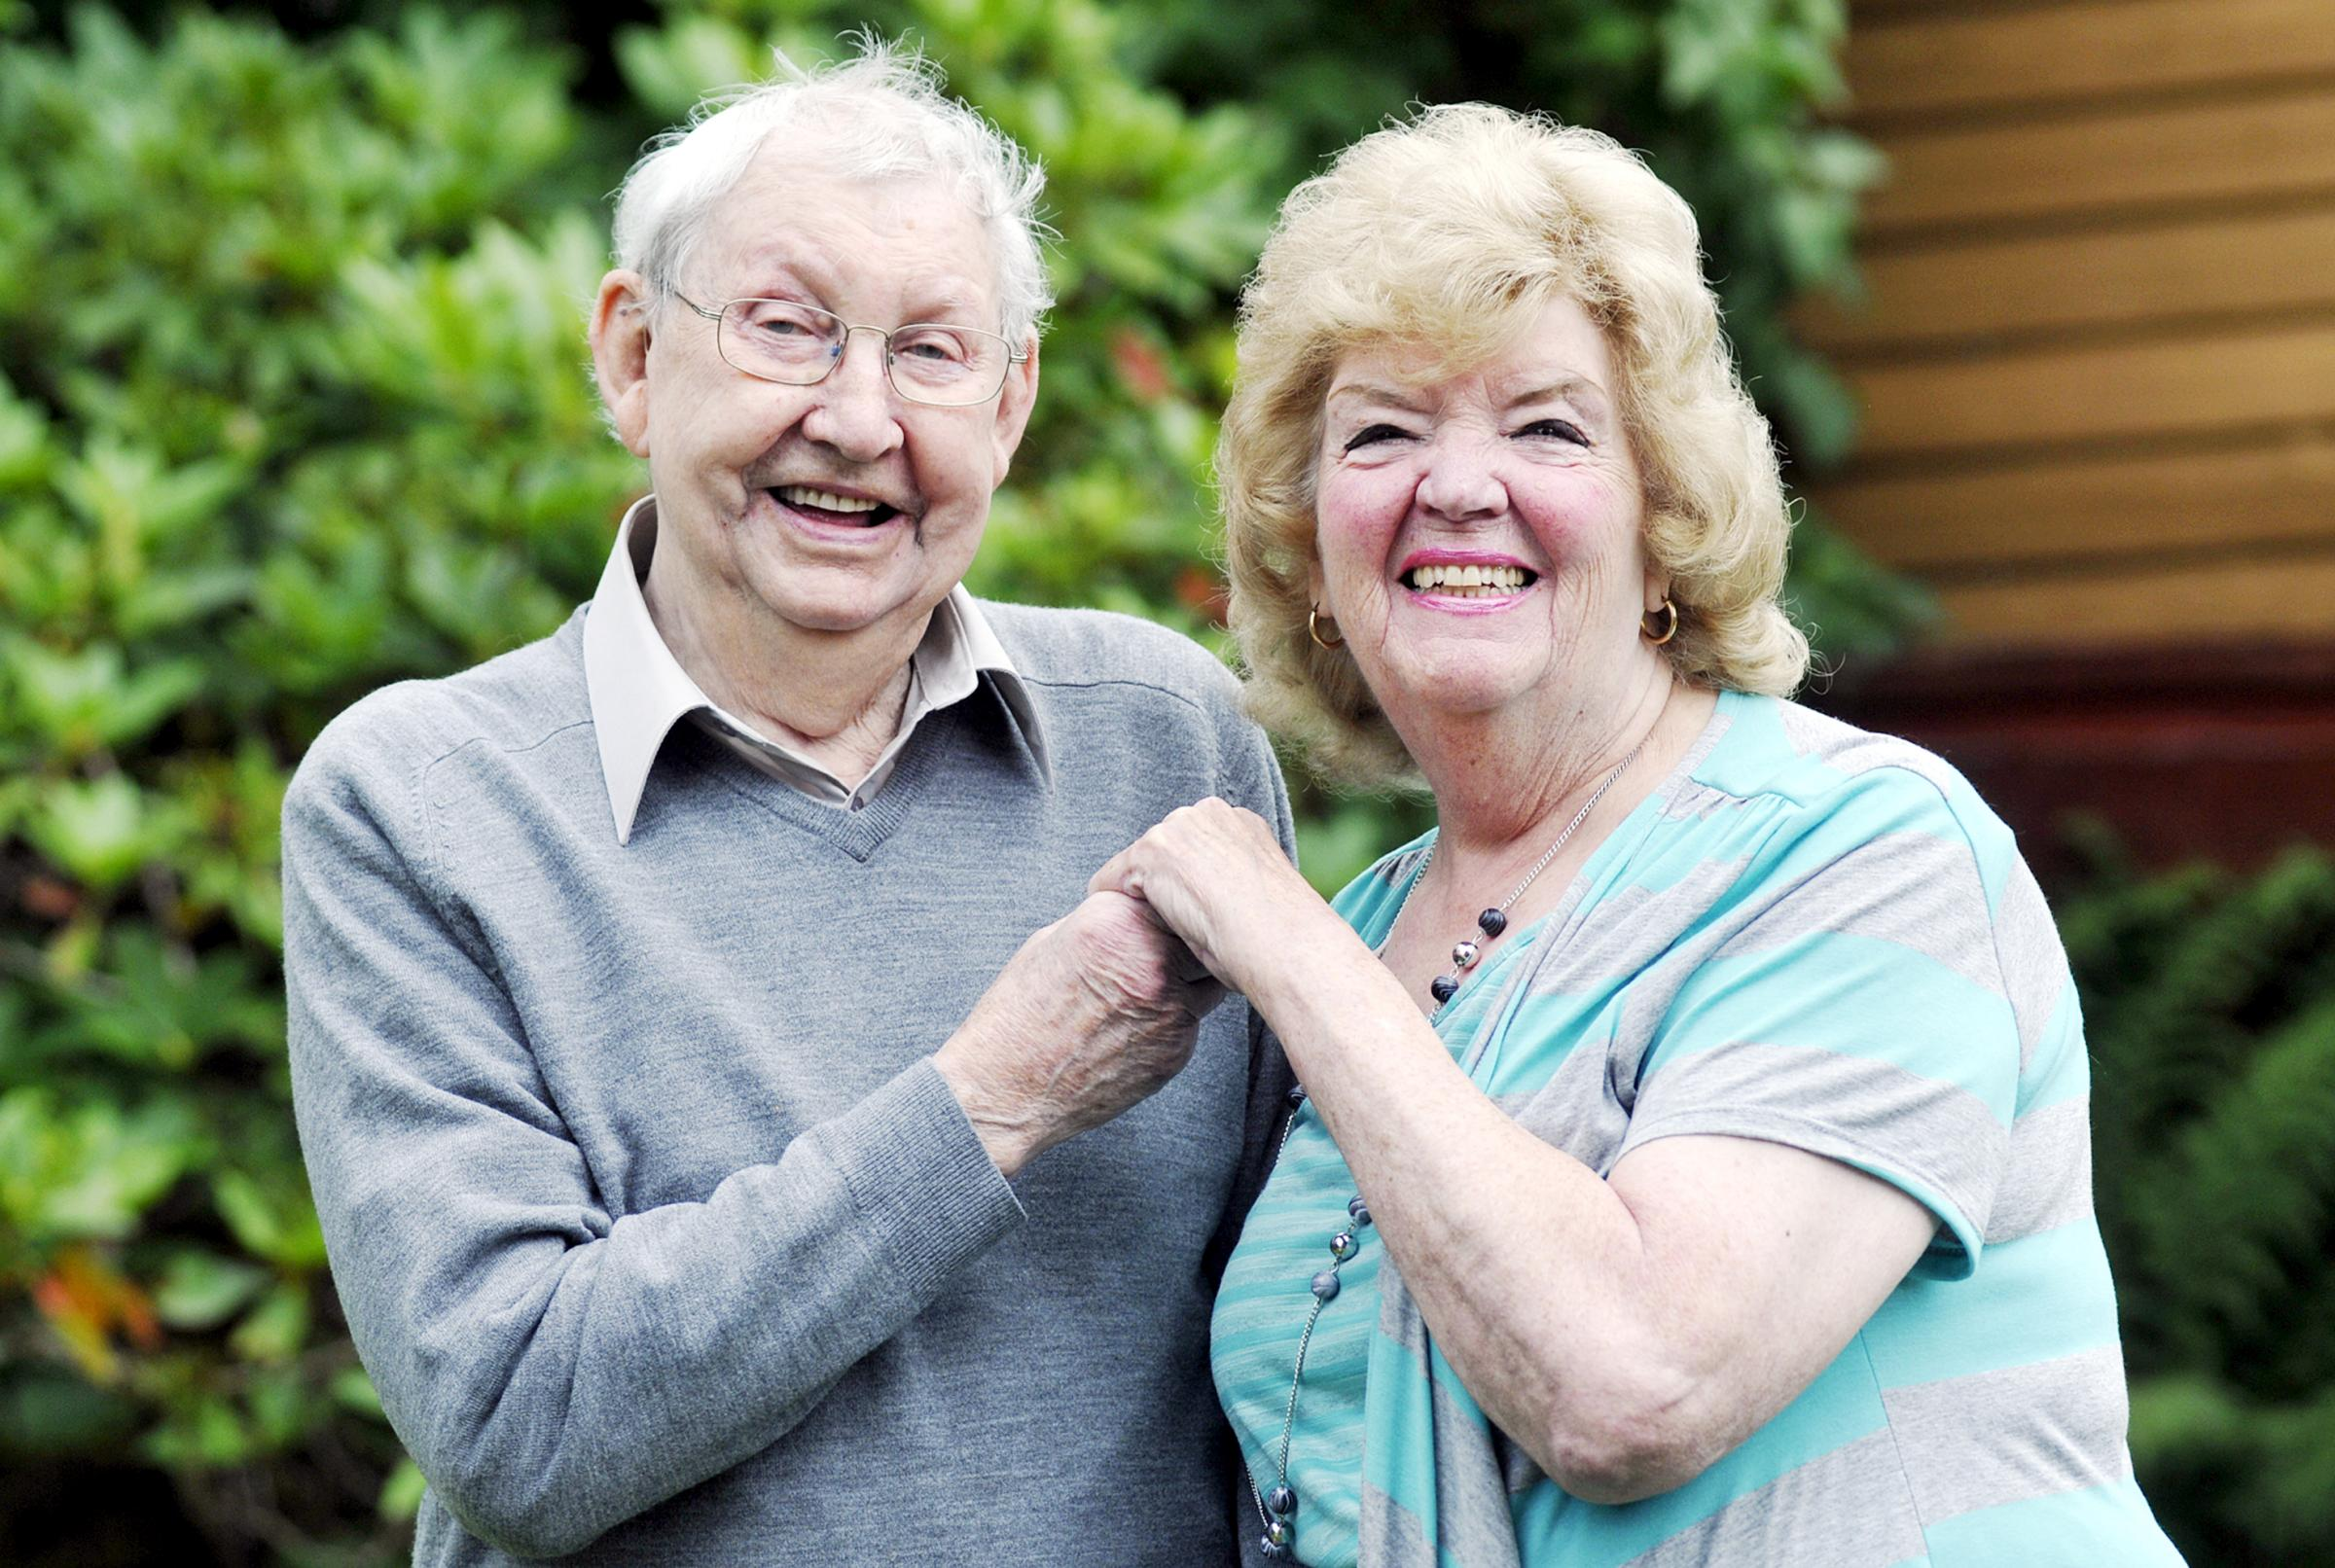 SHARING James and Joan Brooks are celebrating their 60th wedding anniversary